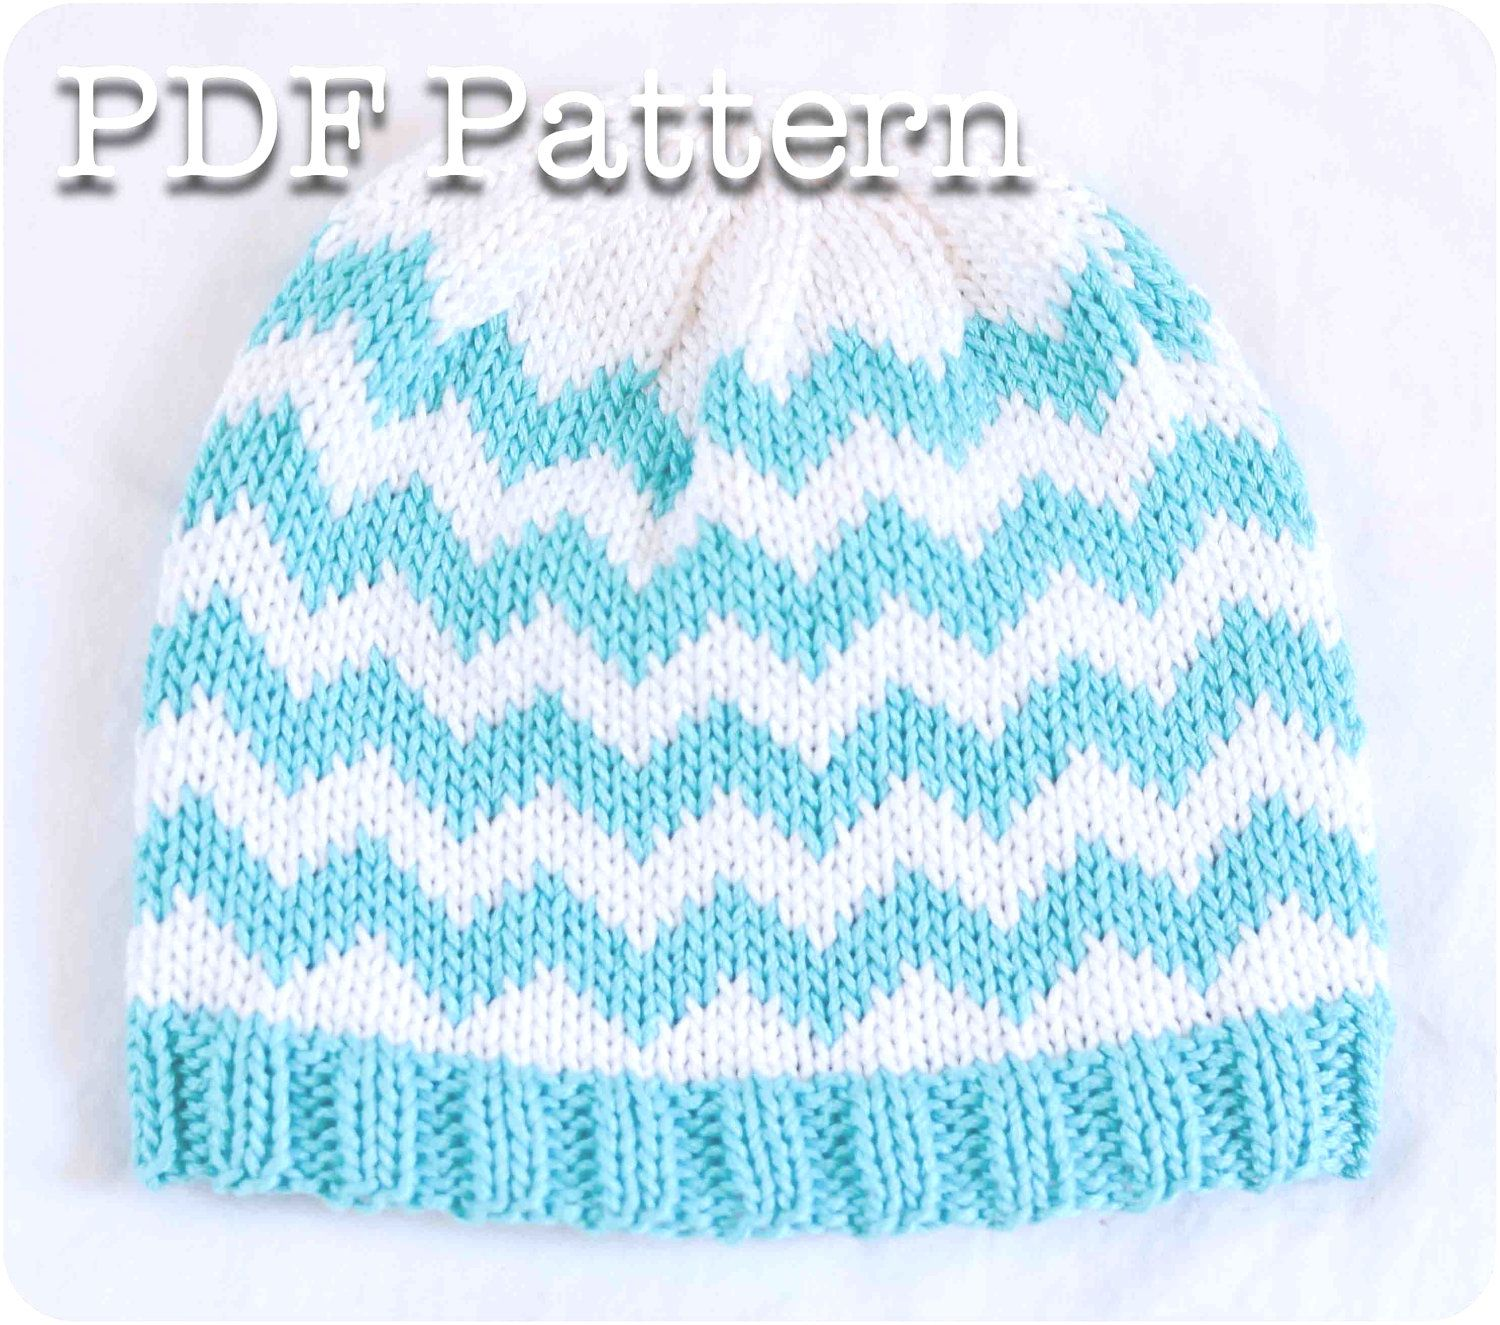 d8c925b40a3 Chevron+Knit+Baby+Hat+Pattern+by+SweetPKnits+on+Etsy